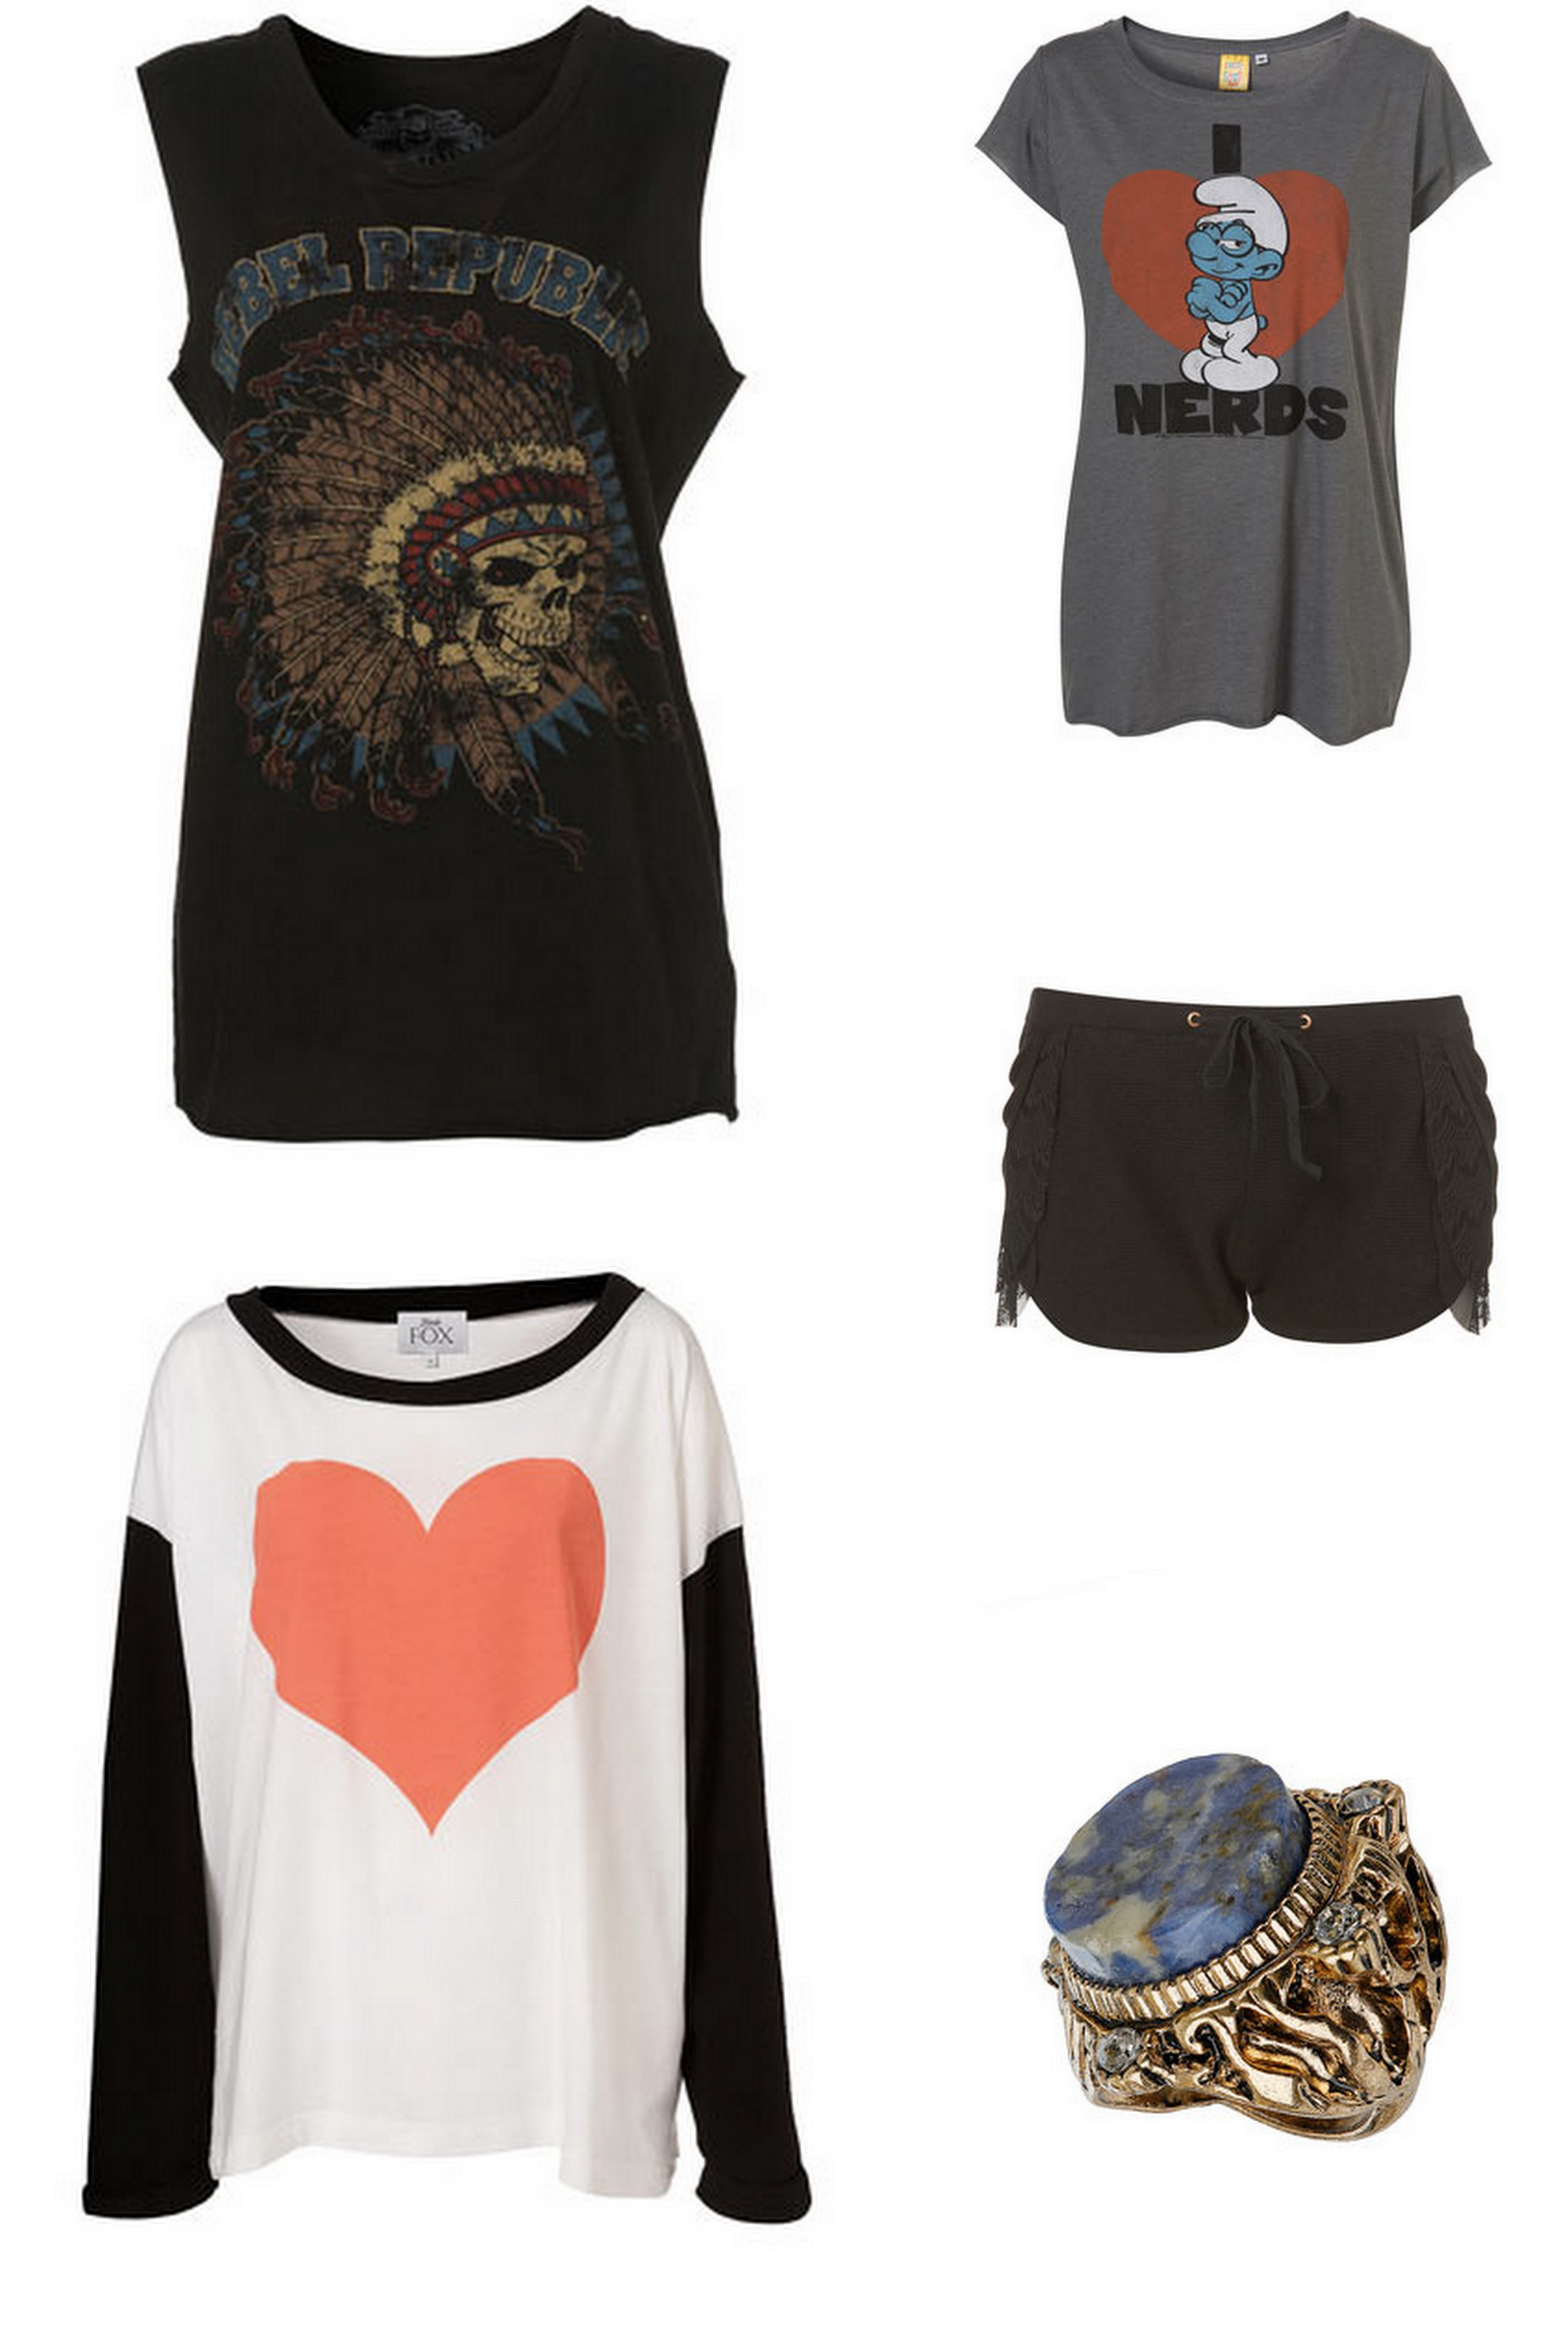 all via topshop.com